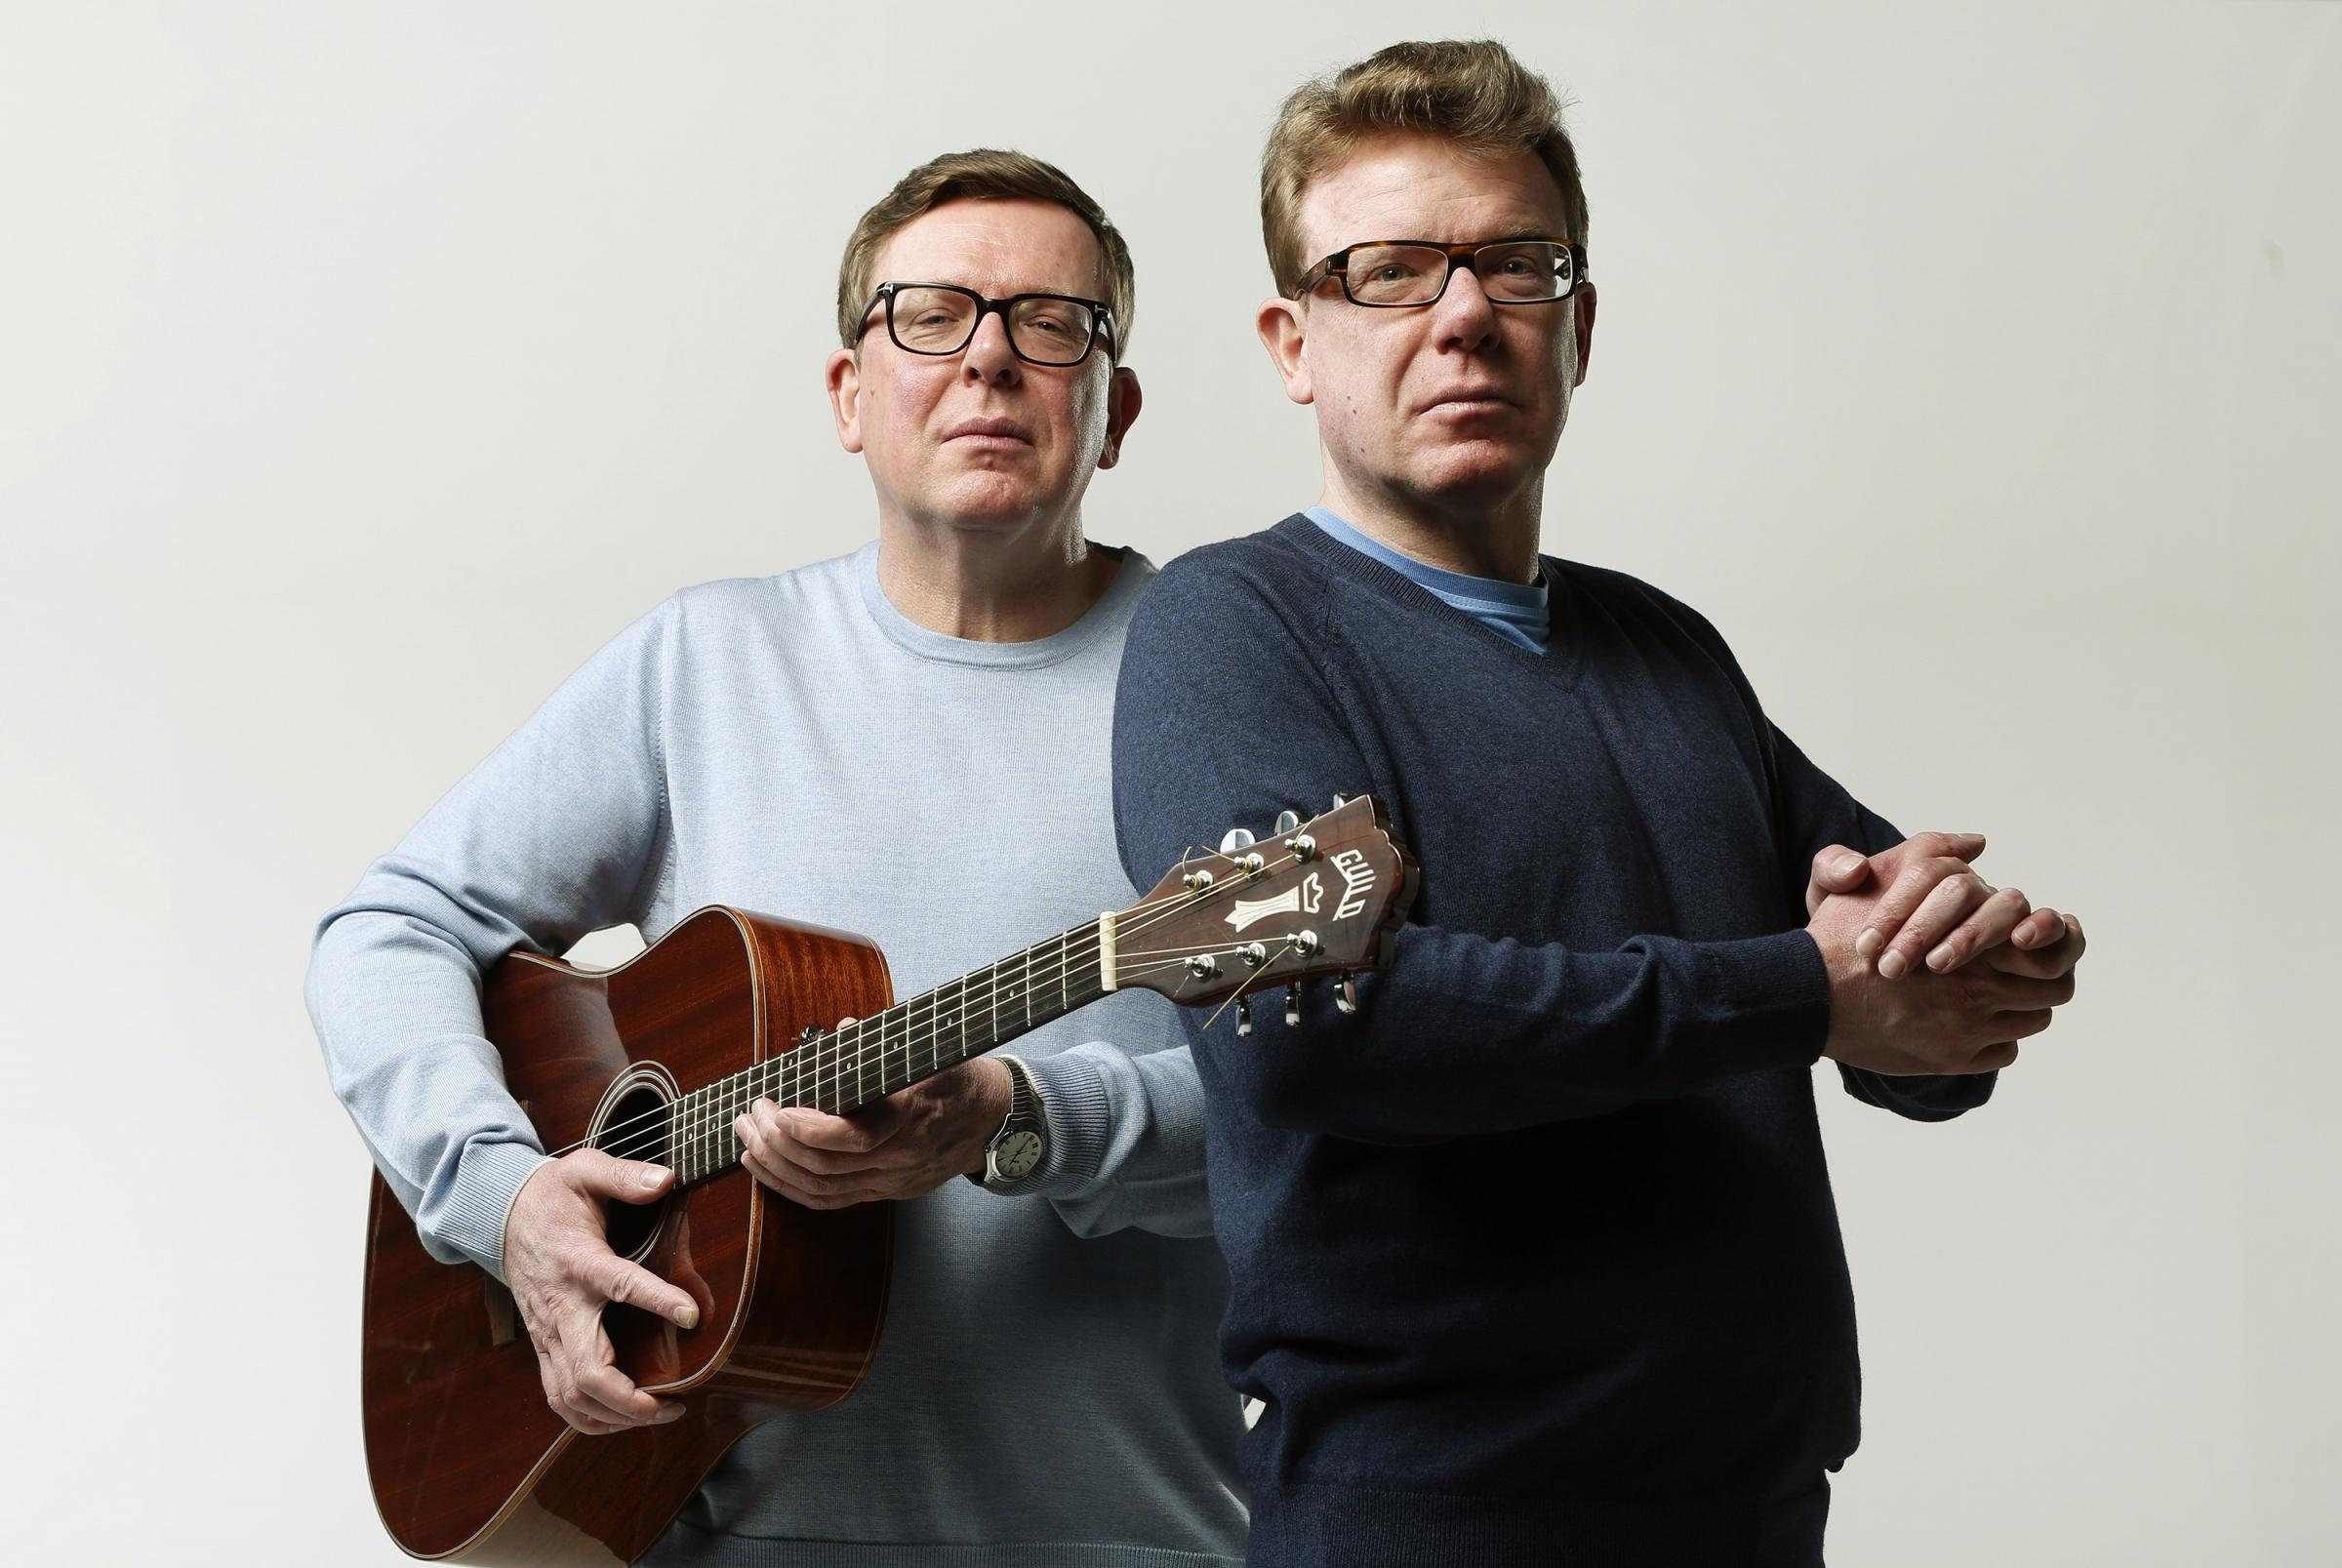 Craig and Charlie Reid, The Proclaimers. Seen here in studio shoot in Leith Picture: MURDO MACLEOD